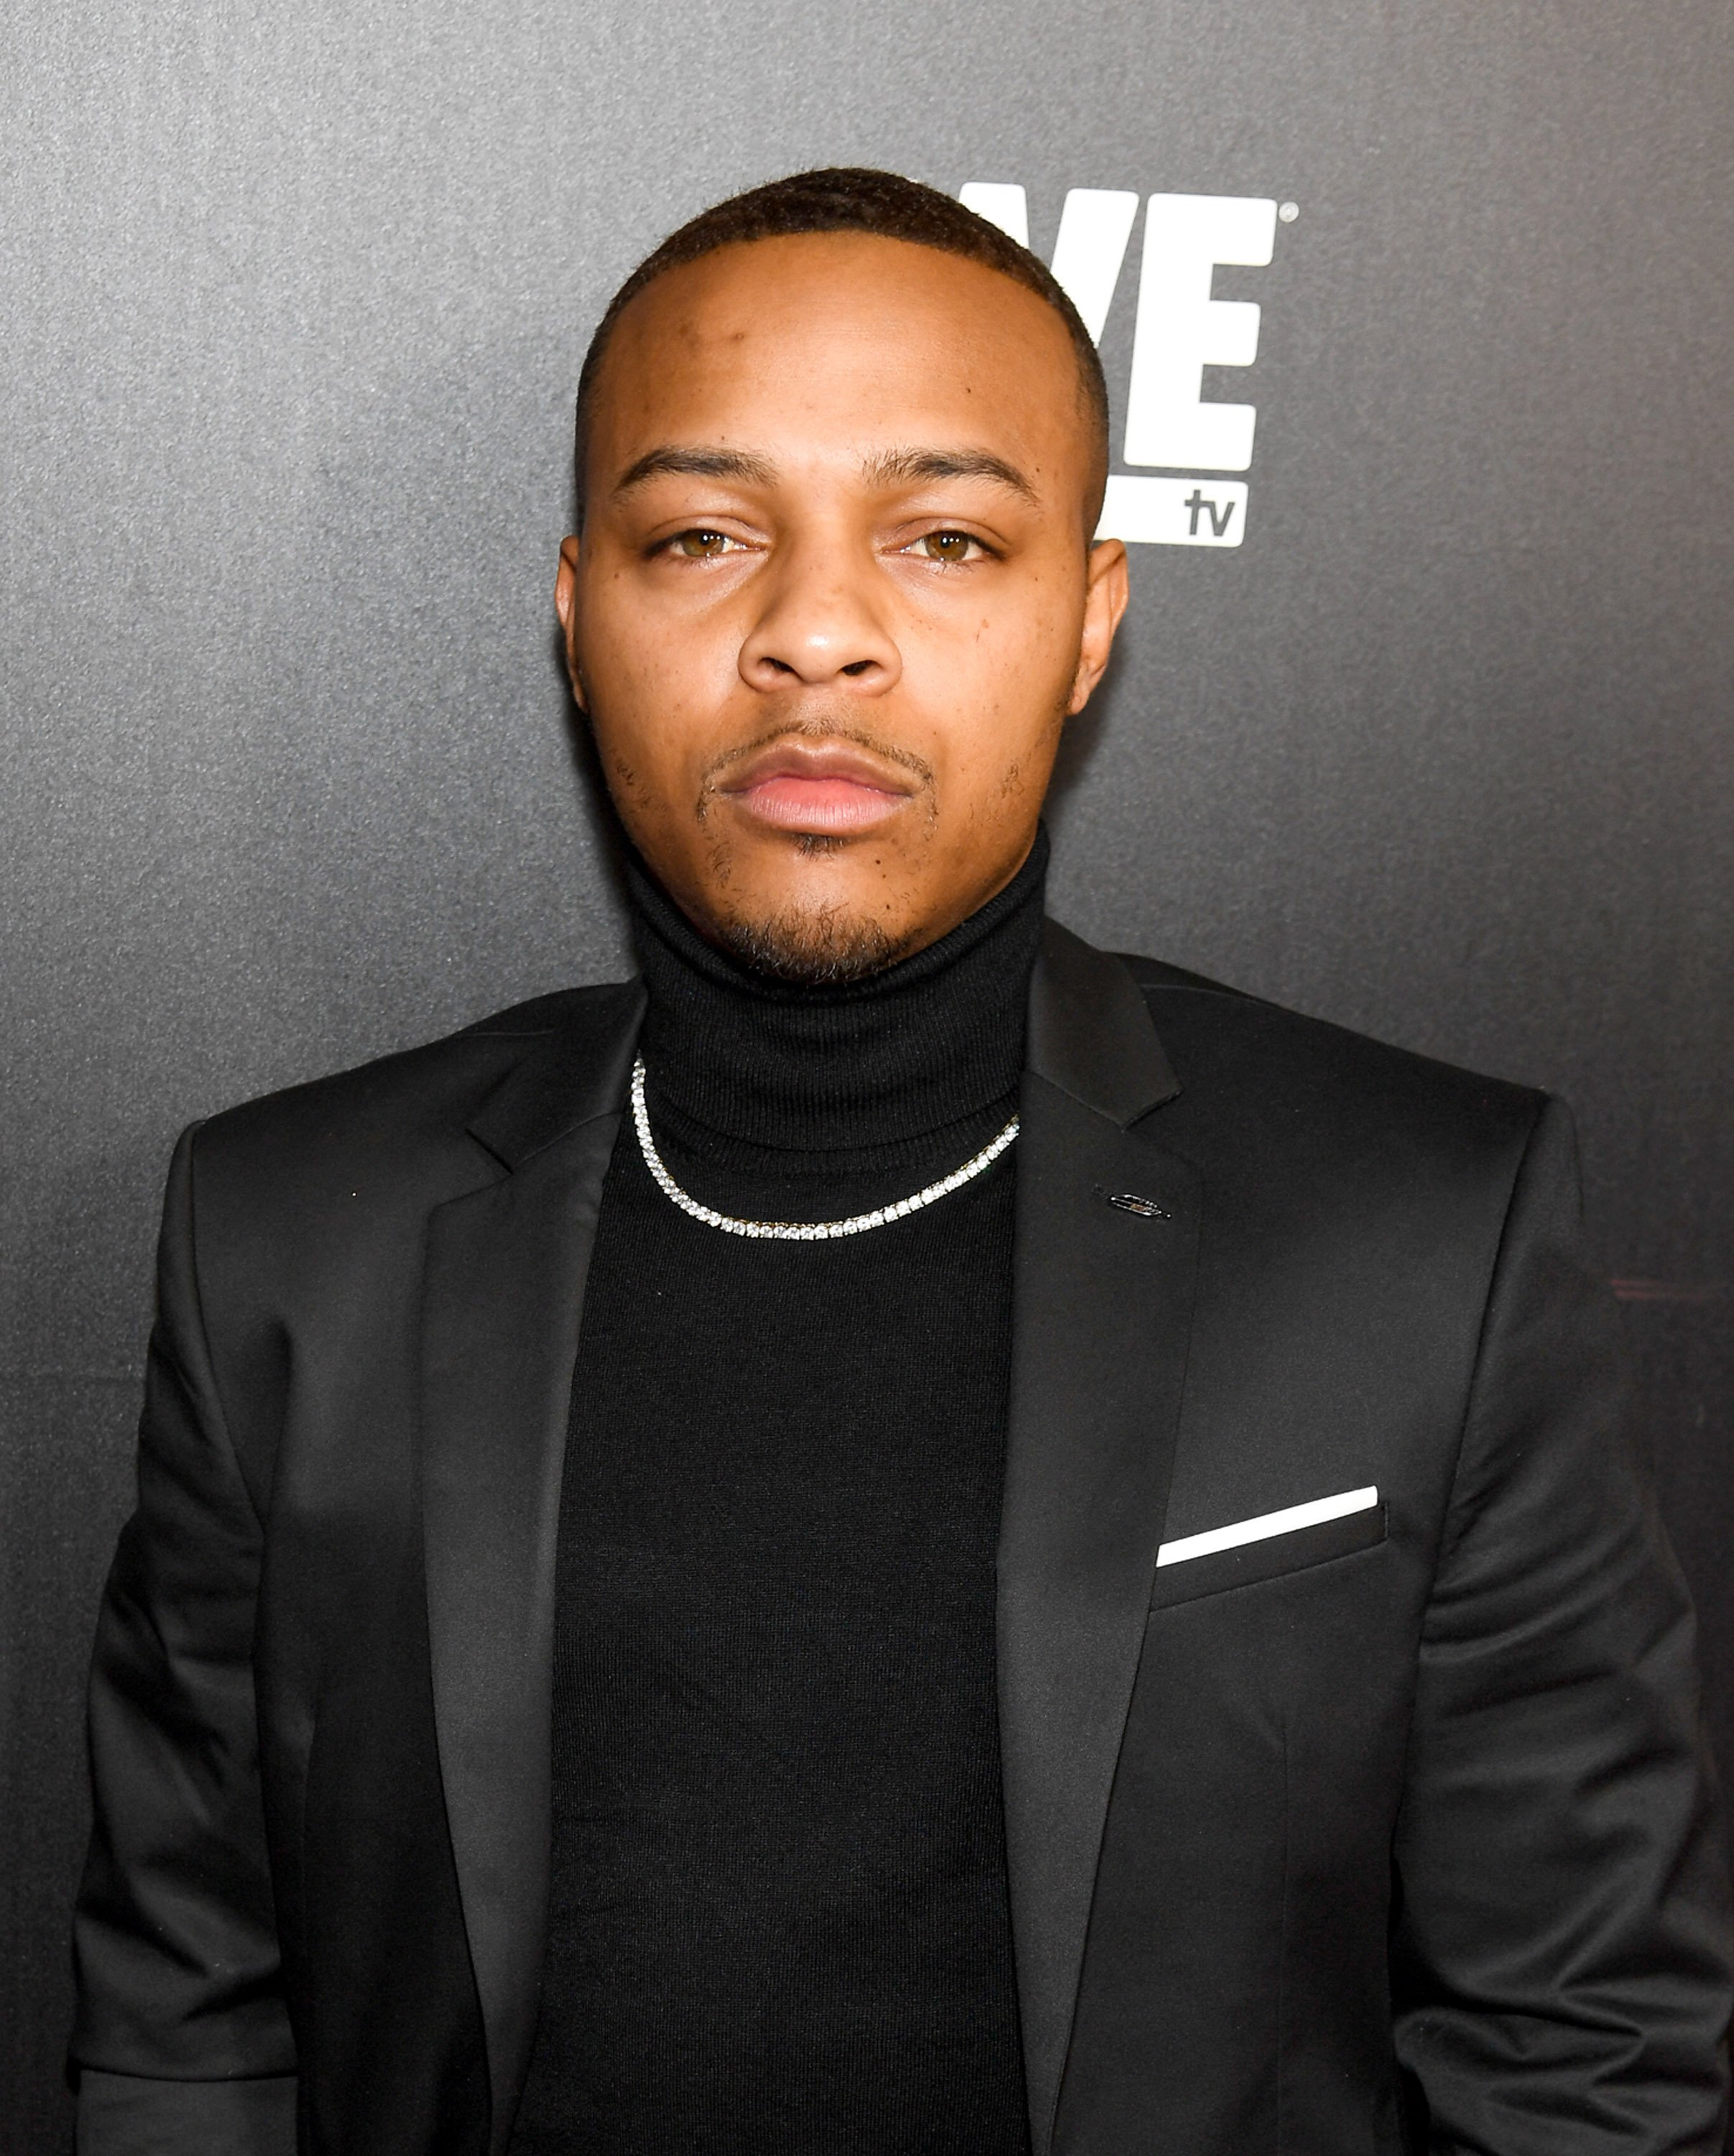 """Bow Wow at the """"Growing Up Hip Hop Atlanta"""" season 2 premiere party, 2018 in Atlanta, Georgia 